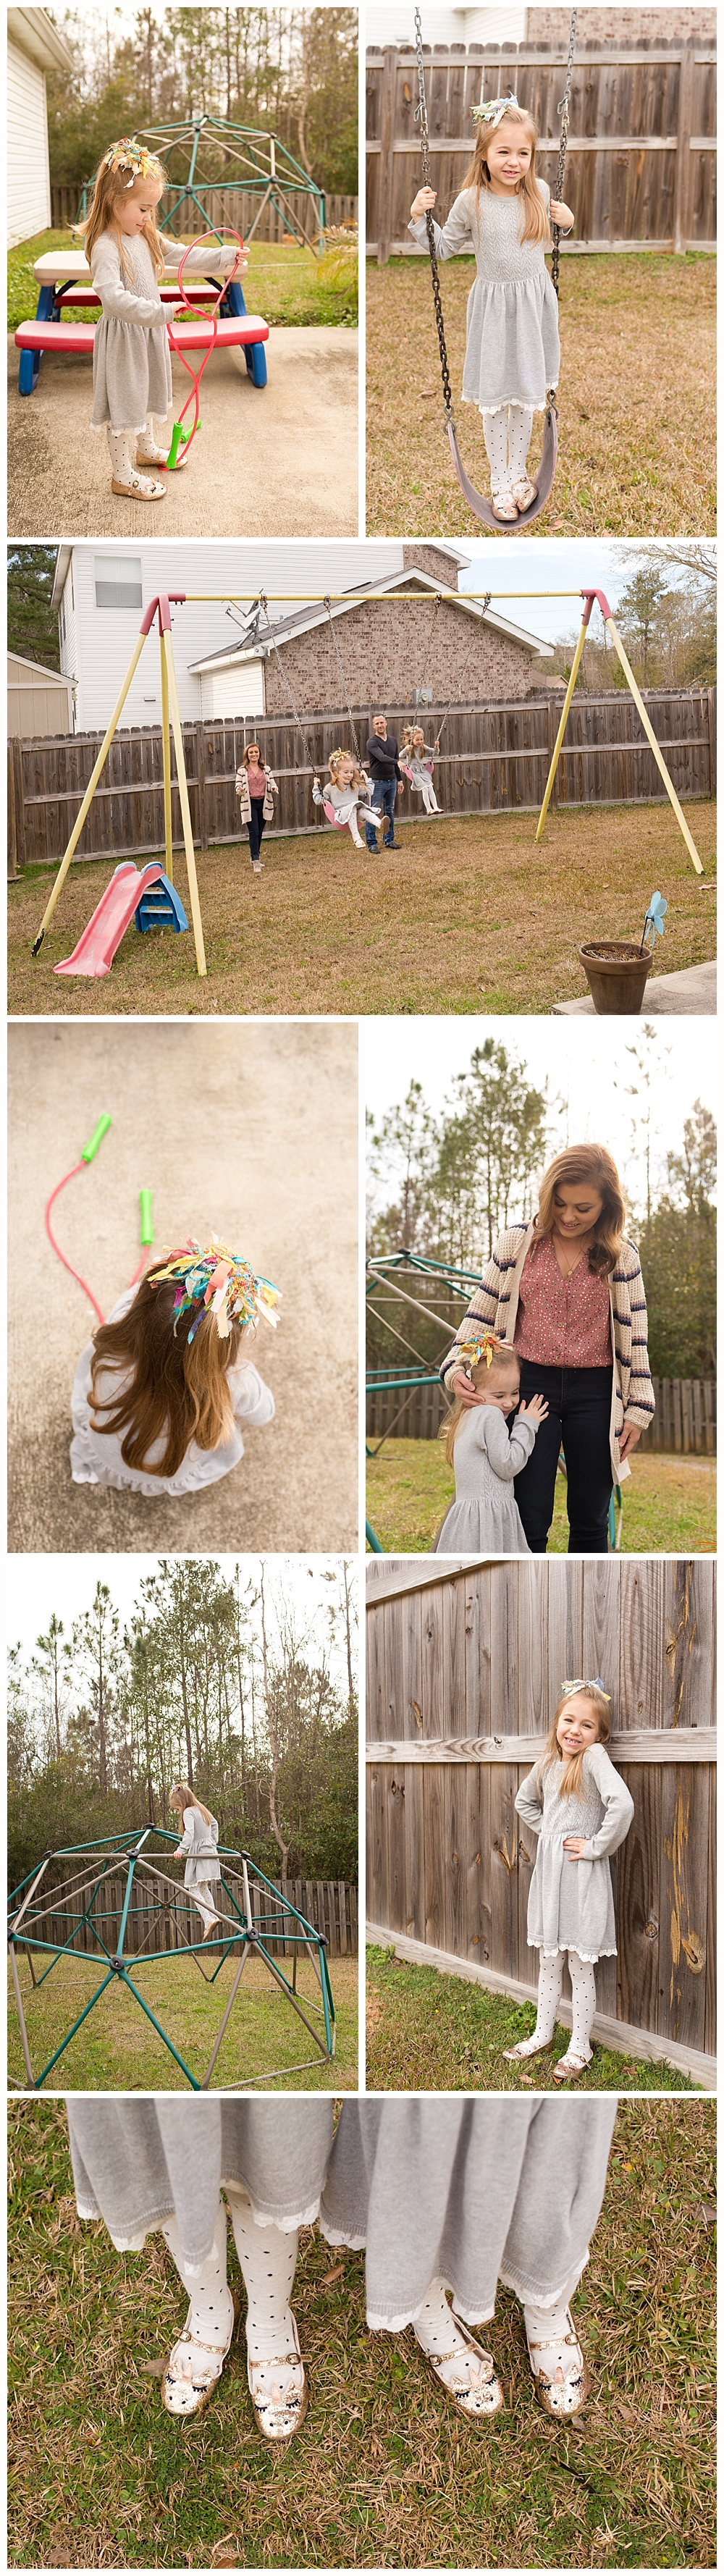 candid lifestyle family photos in back yard - Ocean Springs photographer